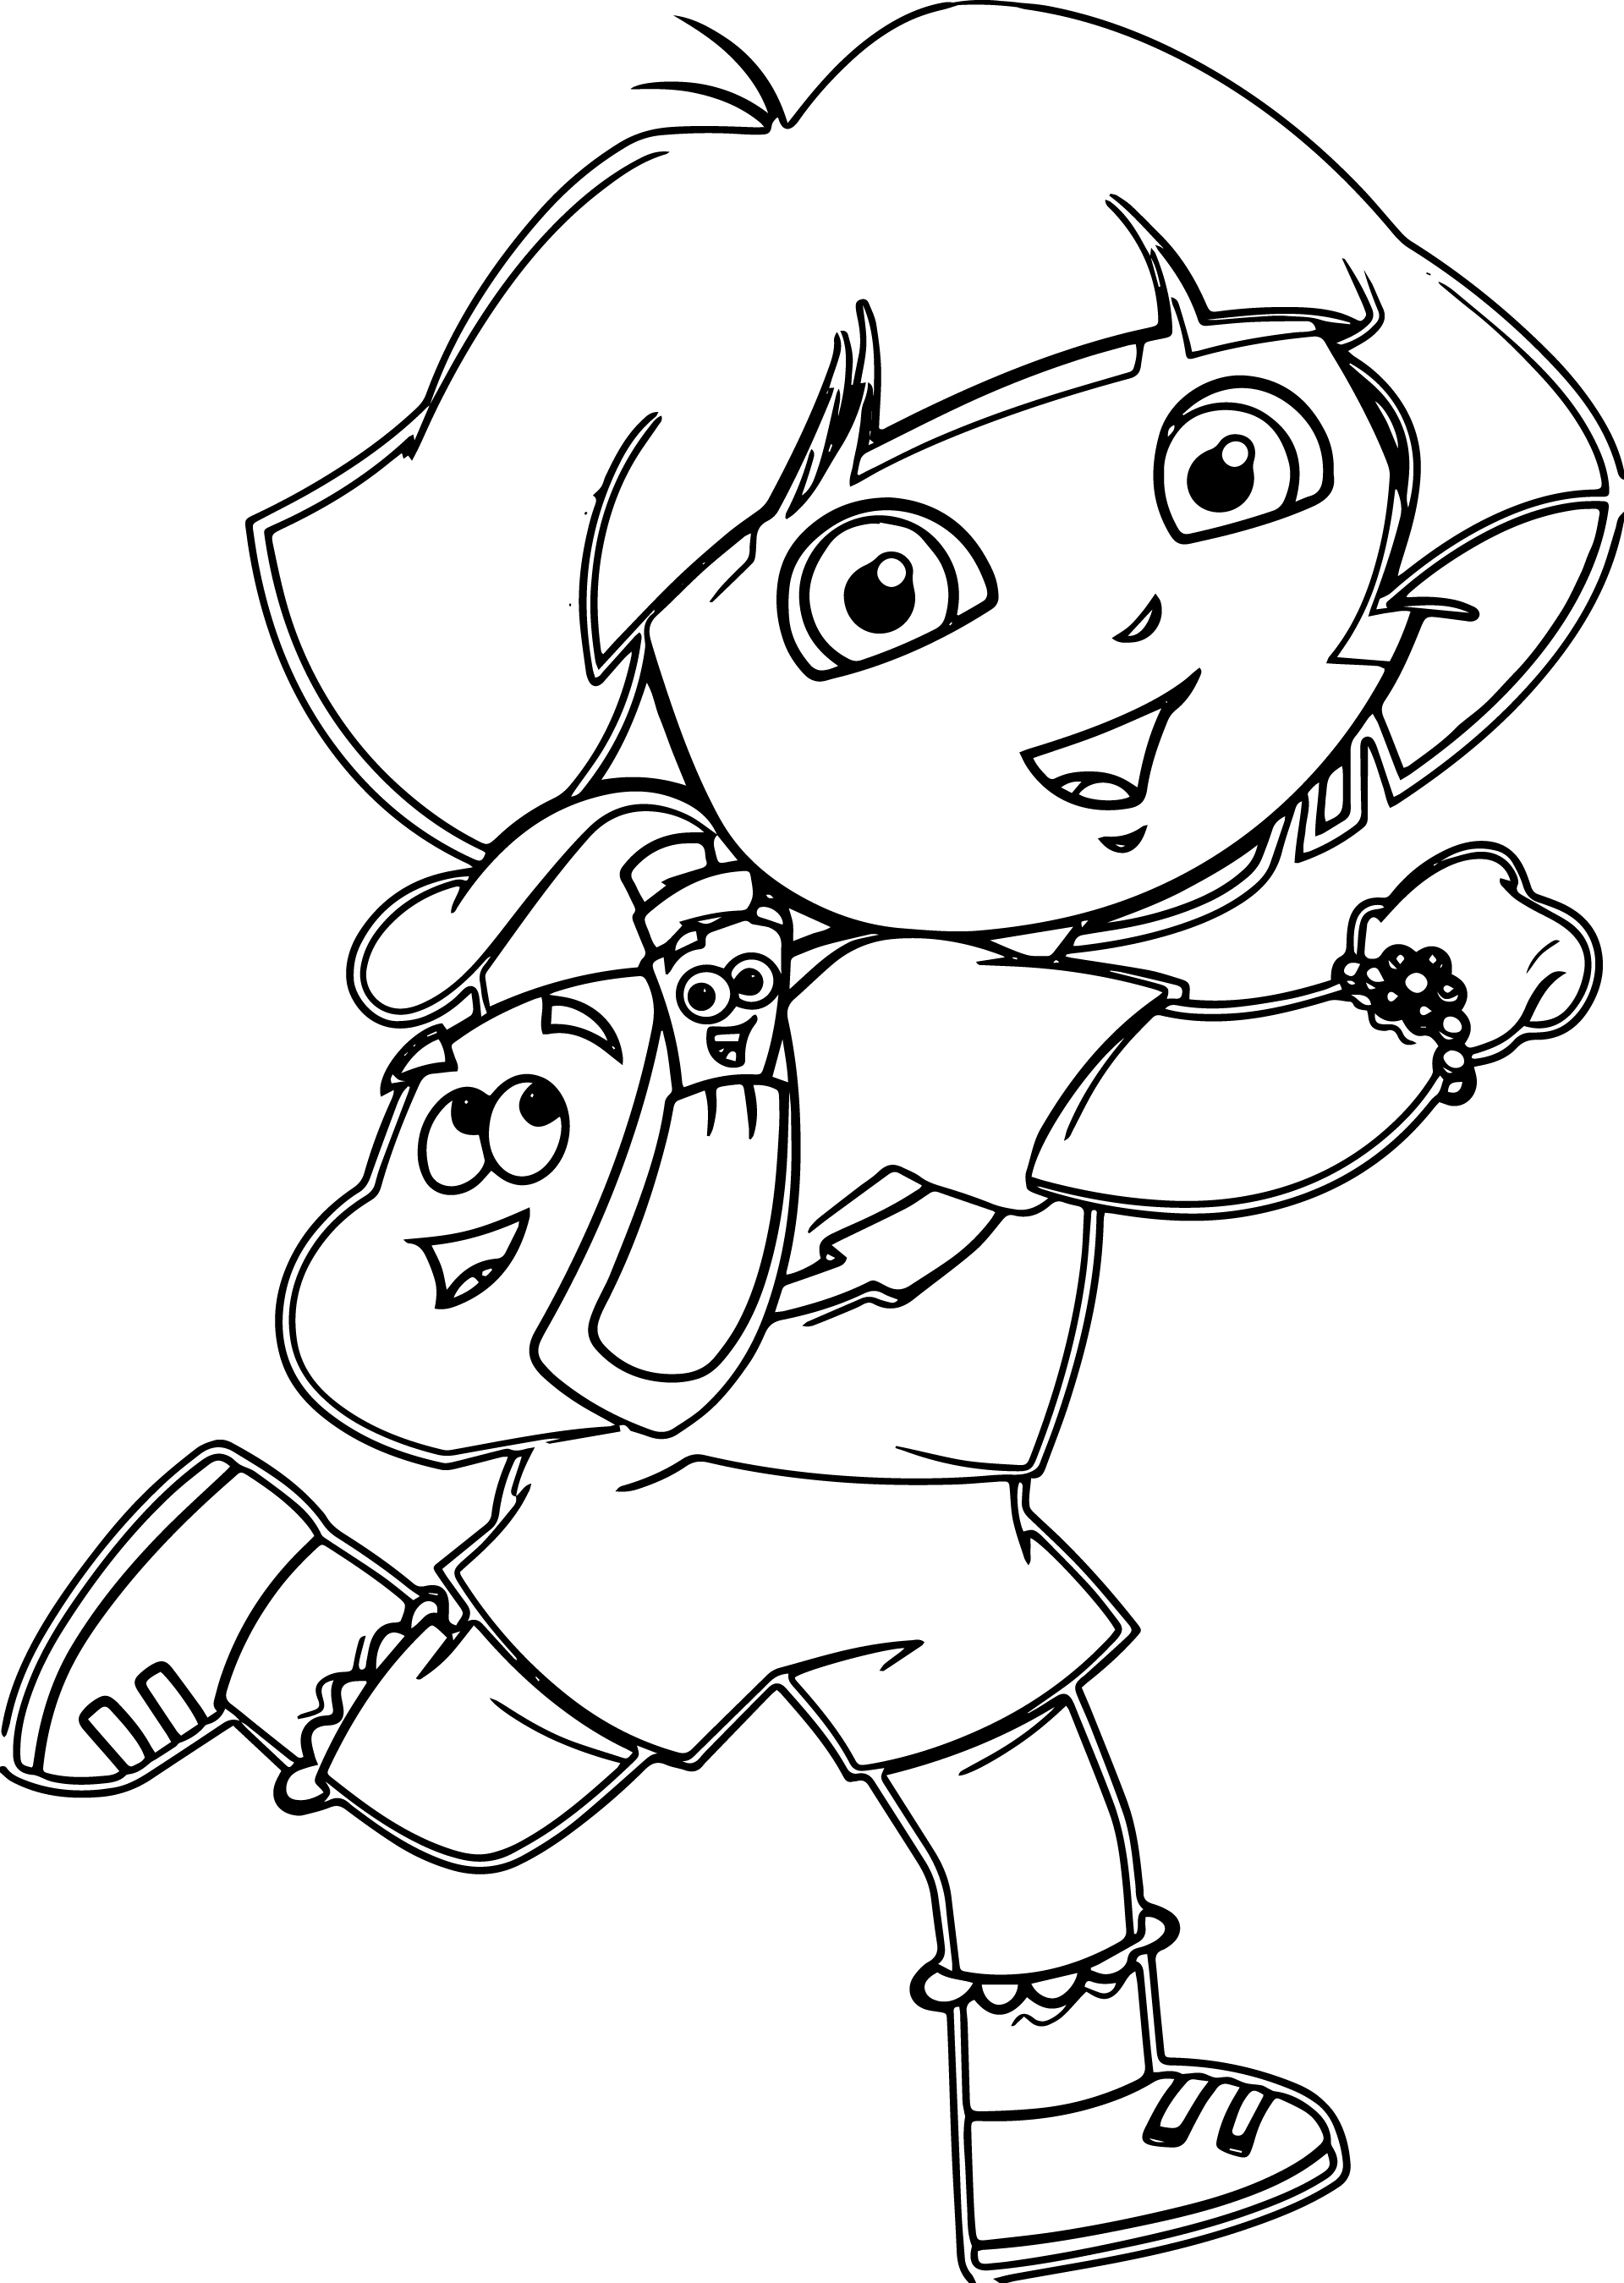 Dora Cartoon Games Coloring Pages | Wecoloringpage.com